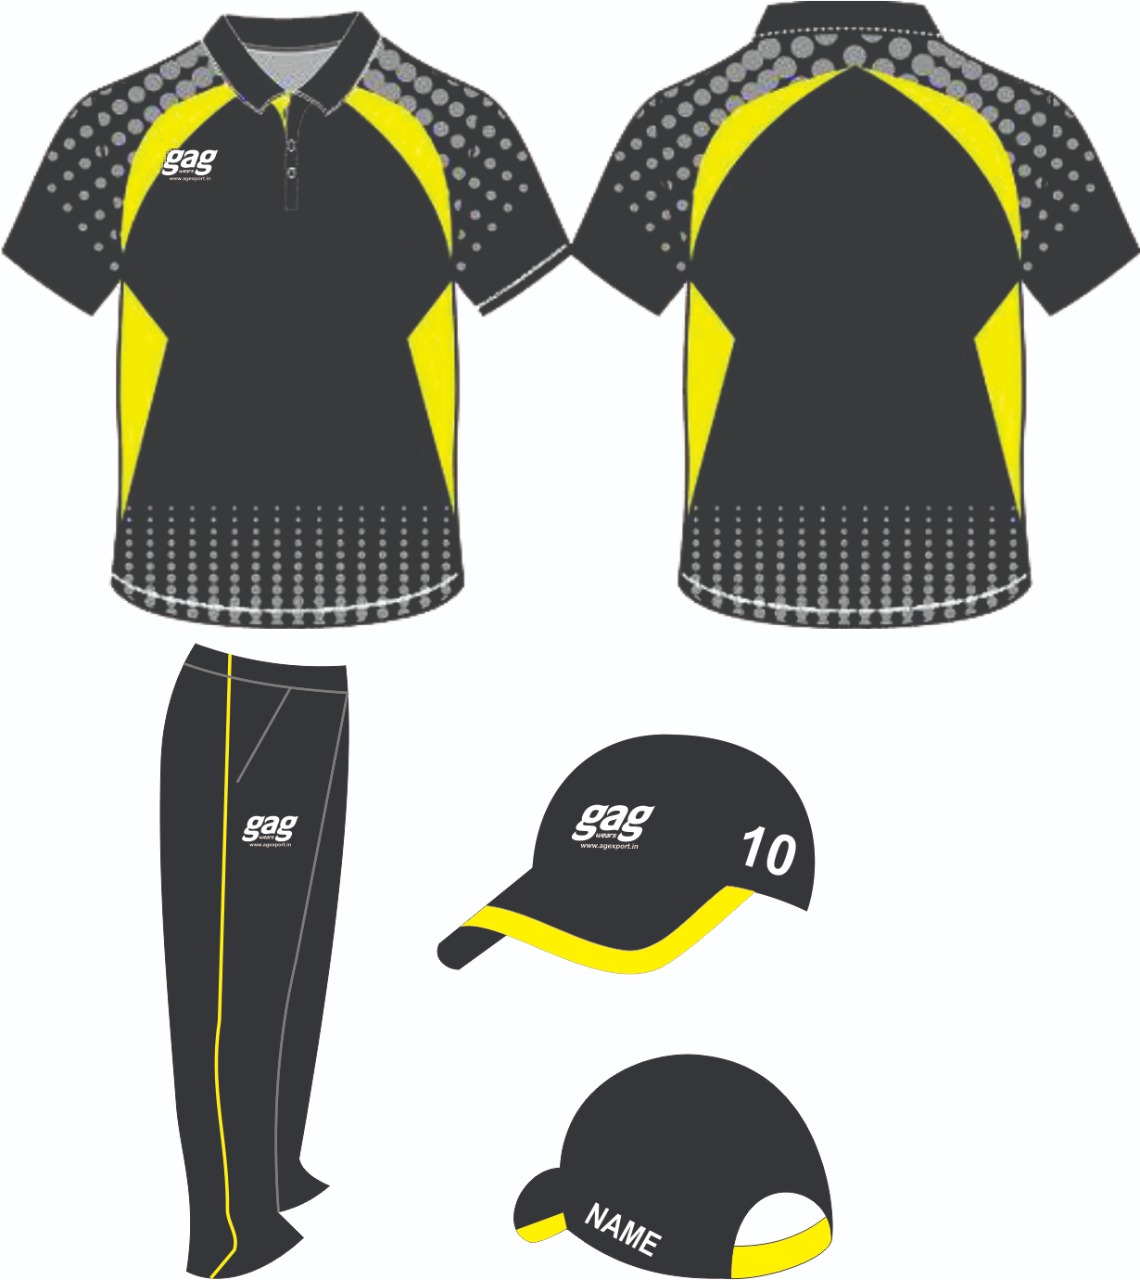 Cricket Uniform Manufacturers in Jalandhar in Belarus